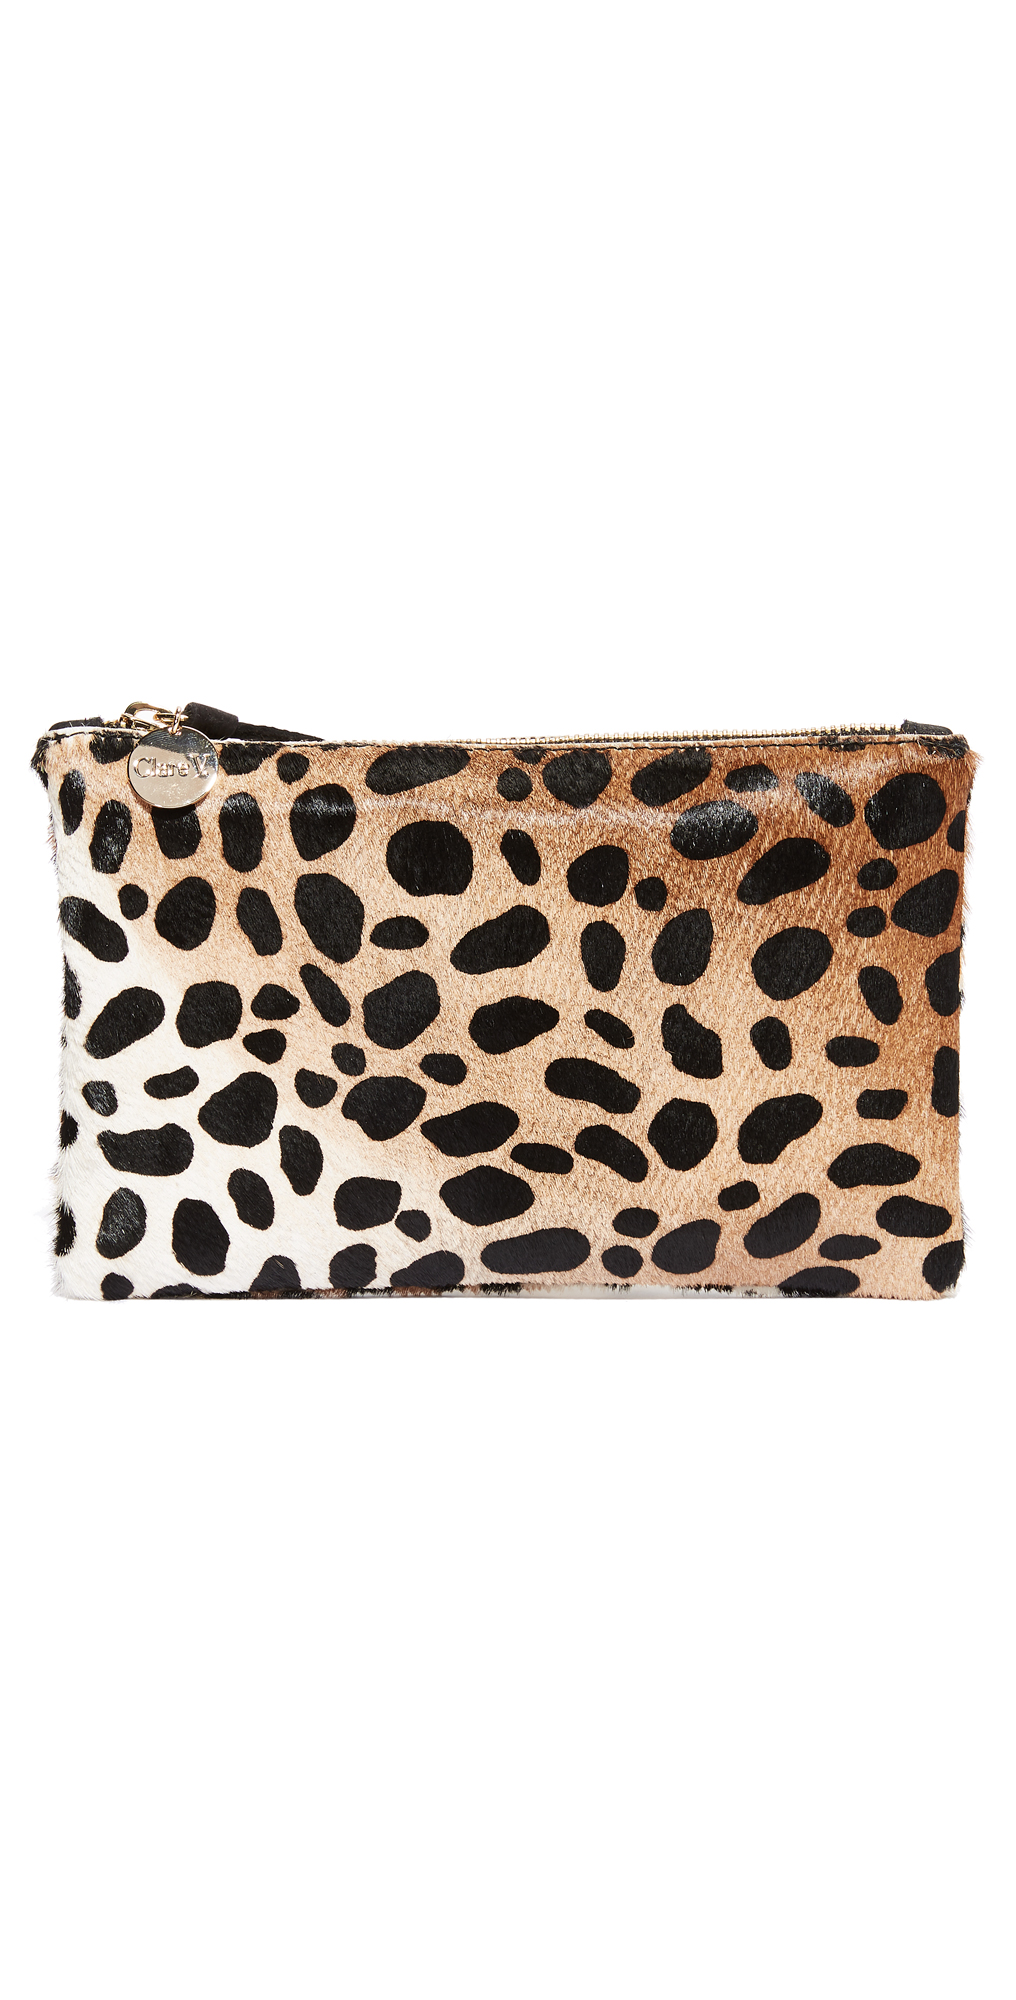 Wallet Clutch Clare V.